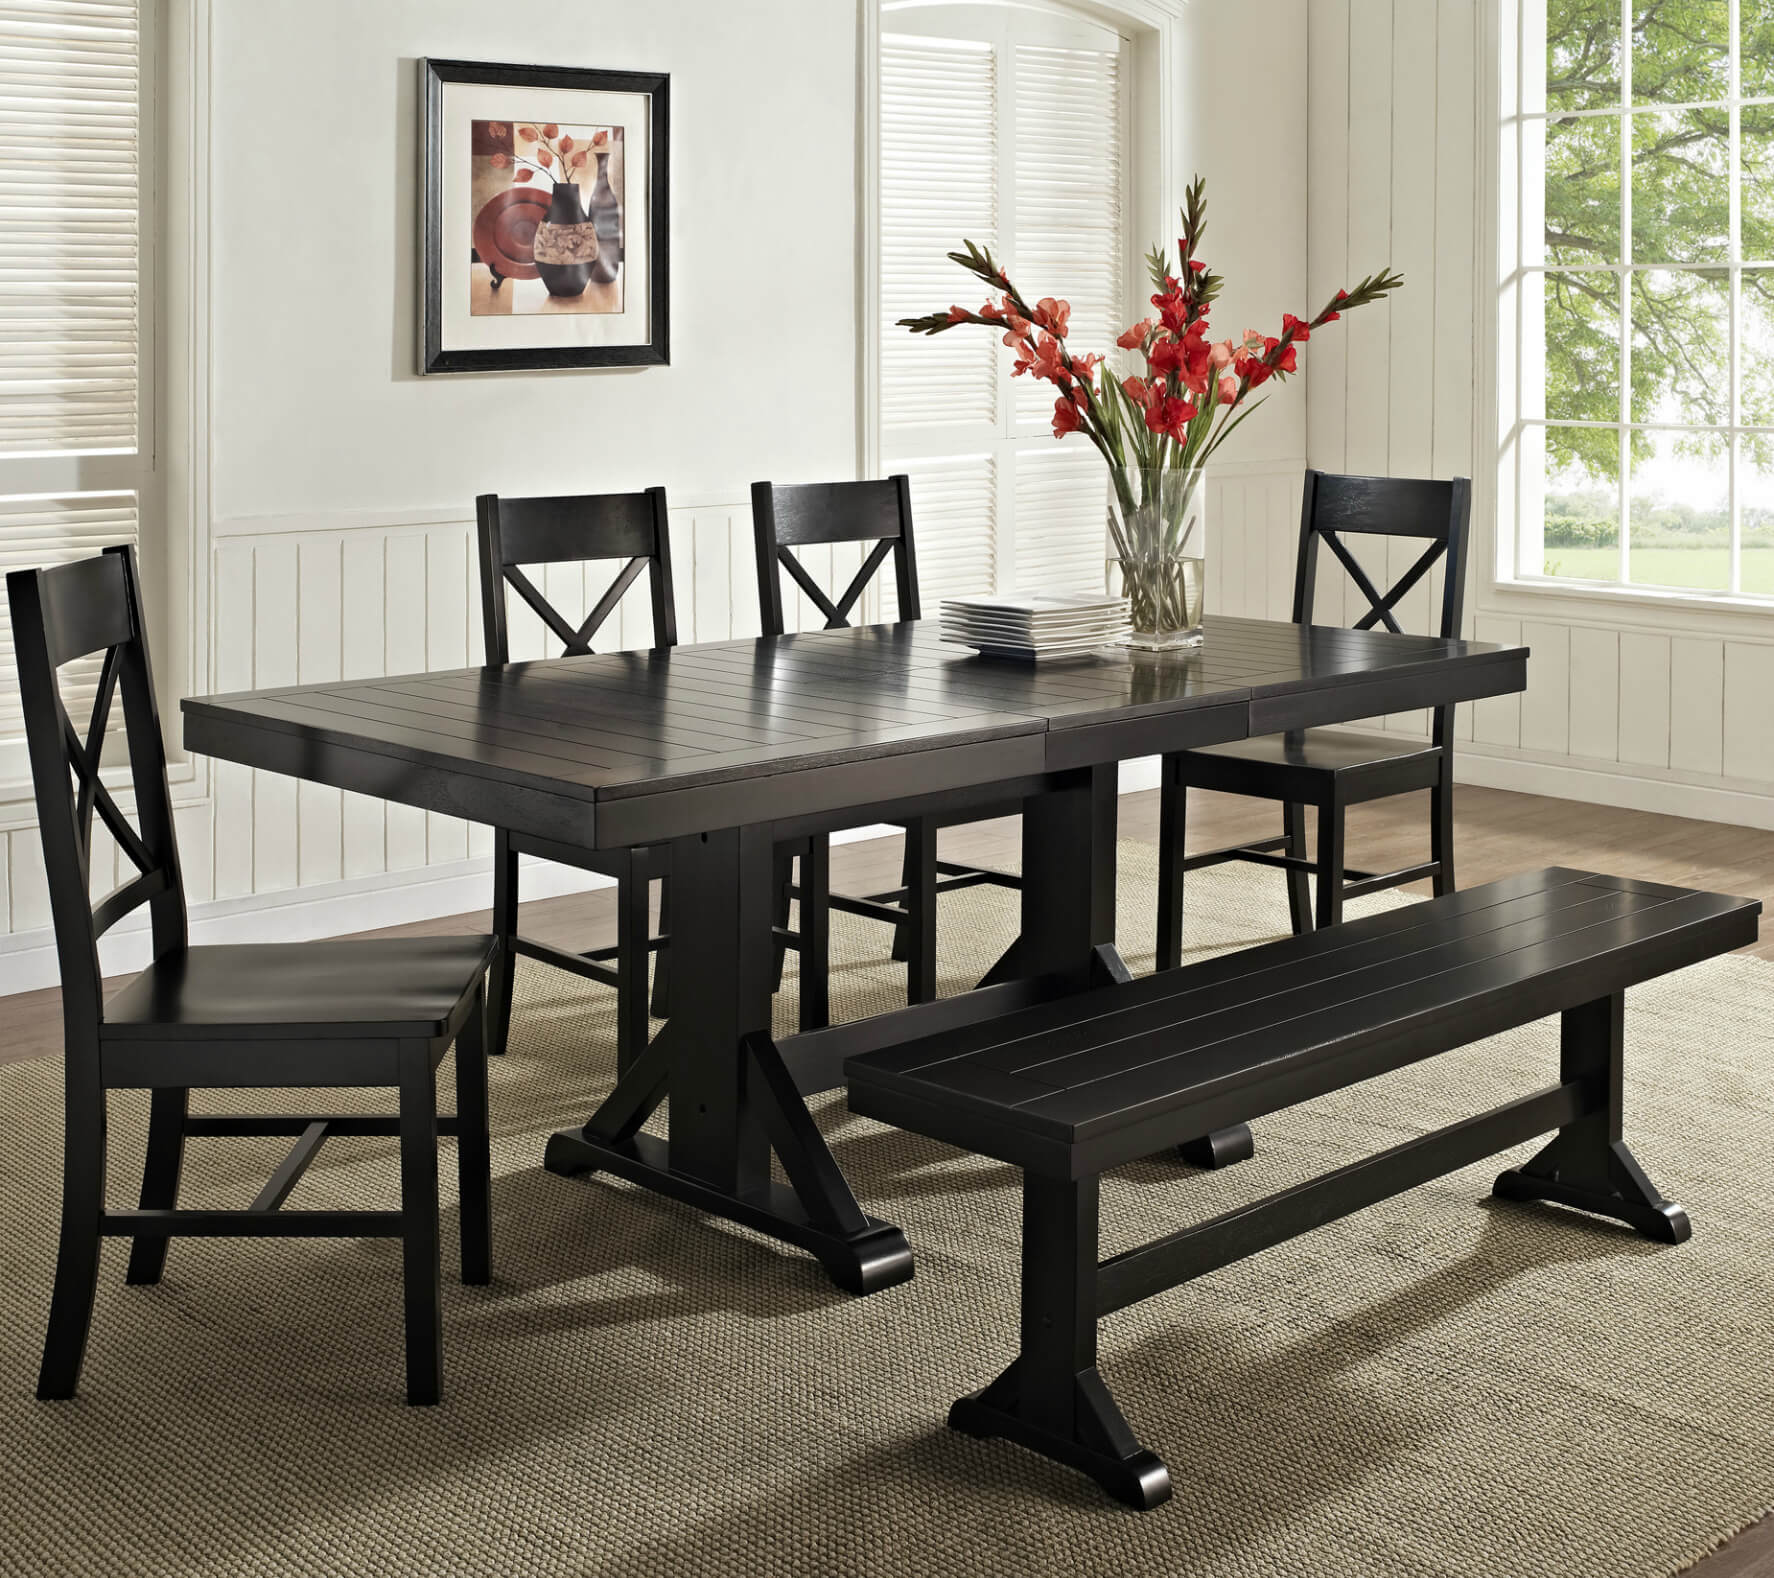 Dining Room With Bench: 26 Big & Small Dining Room Sets With Bench Seating